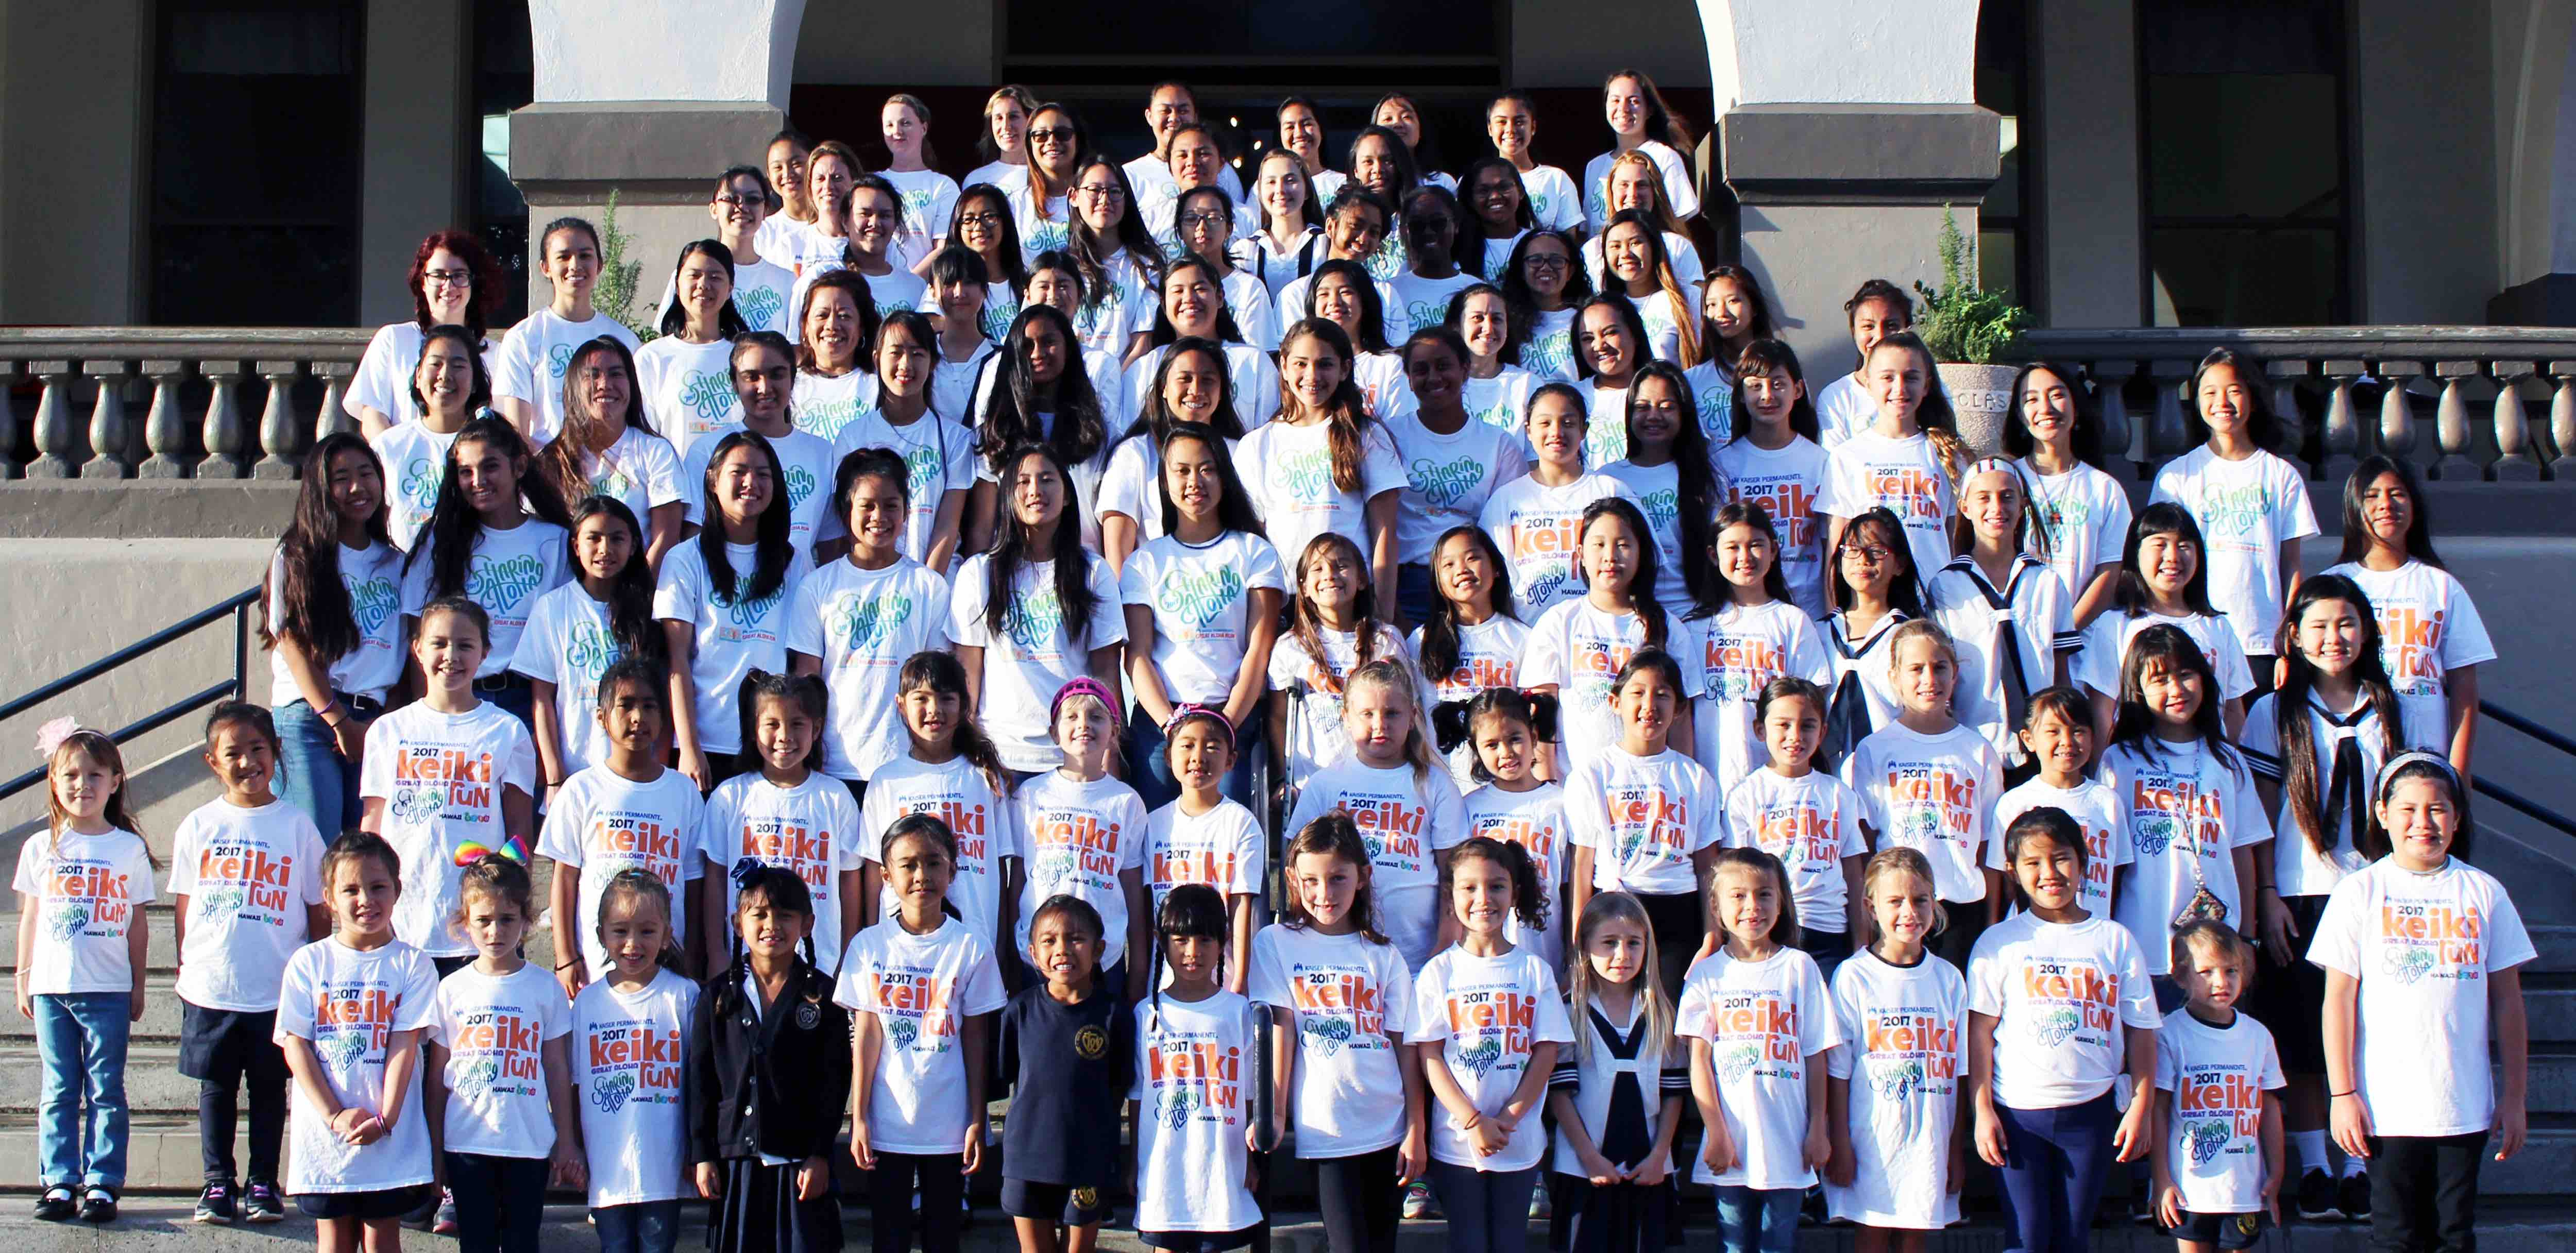 The Great Aloha Run Participants from Sacred Hearts Academy.